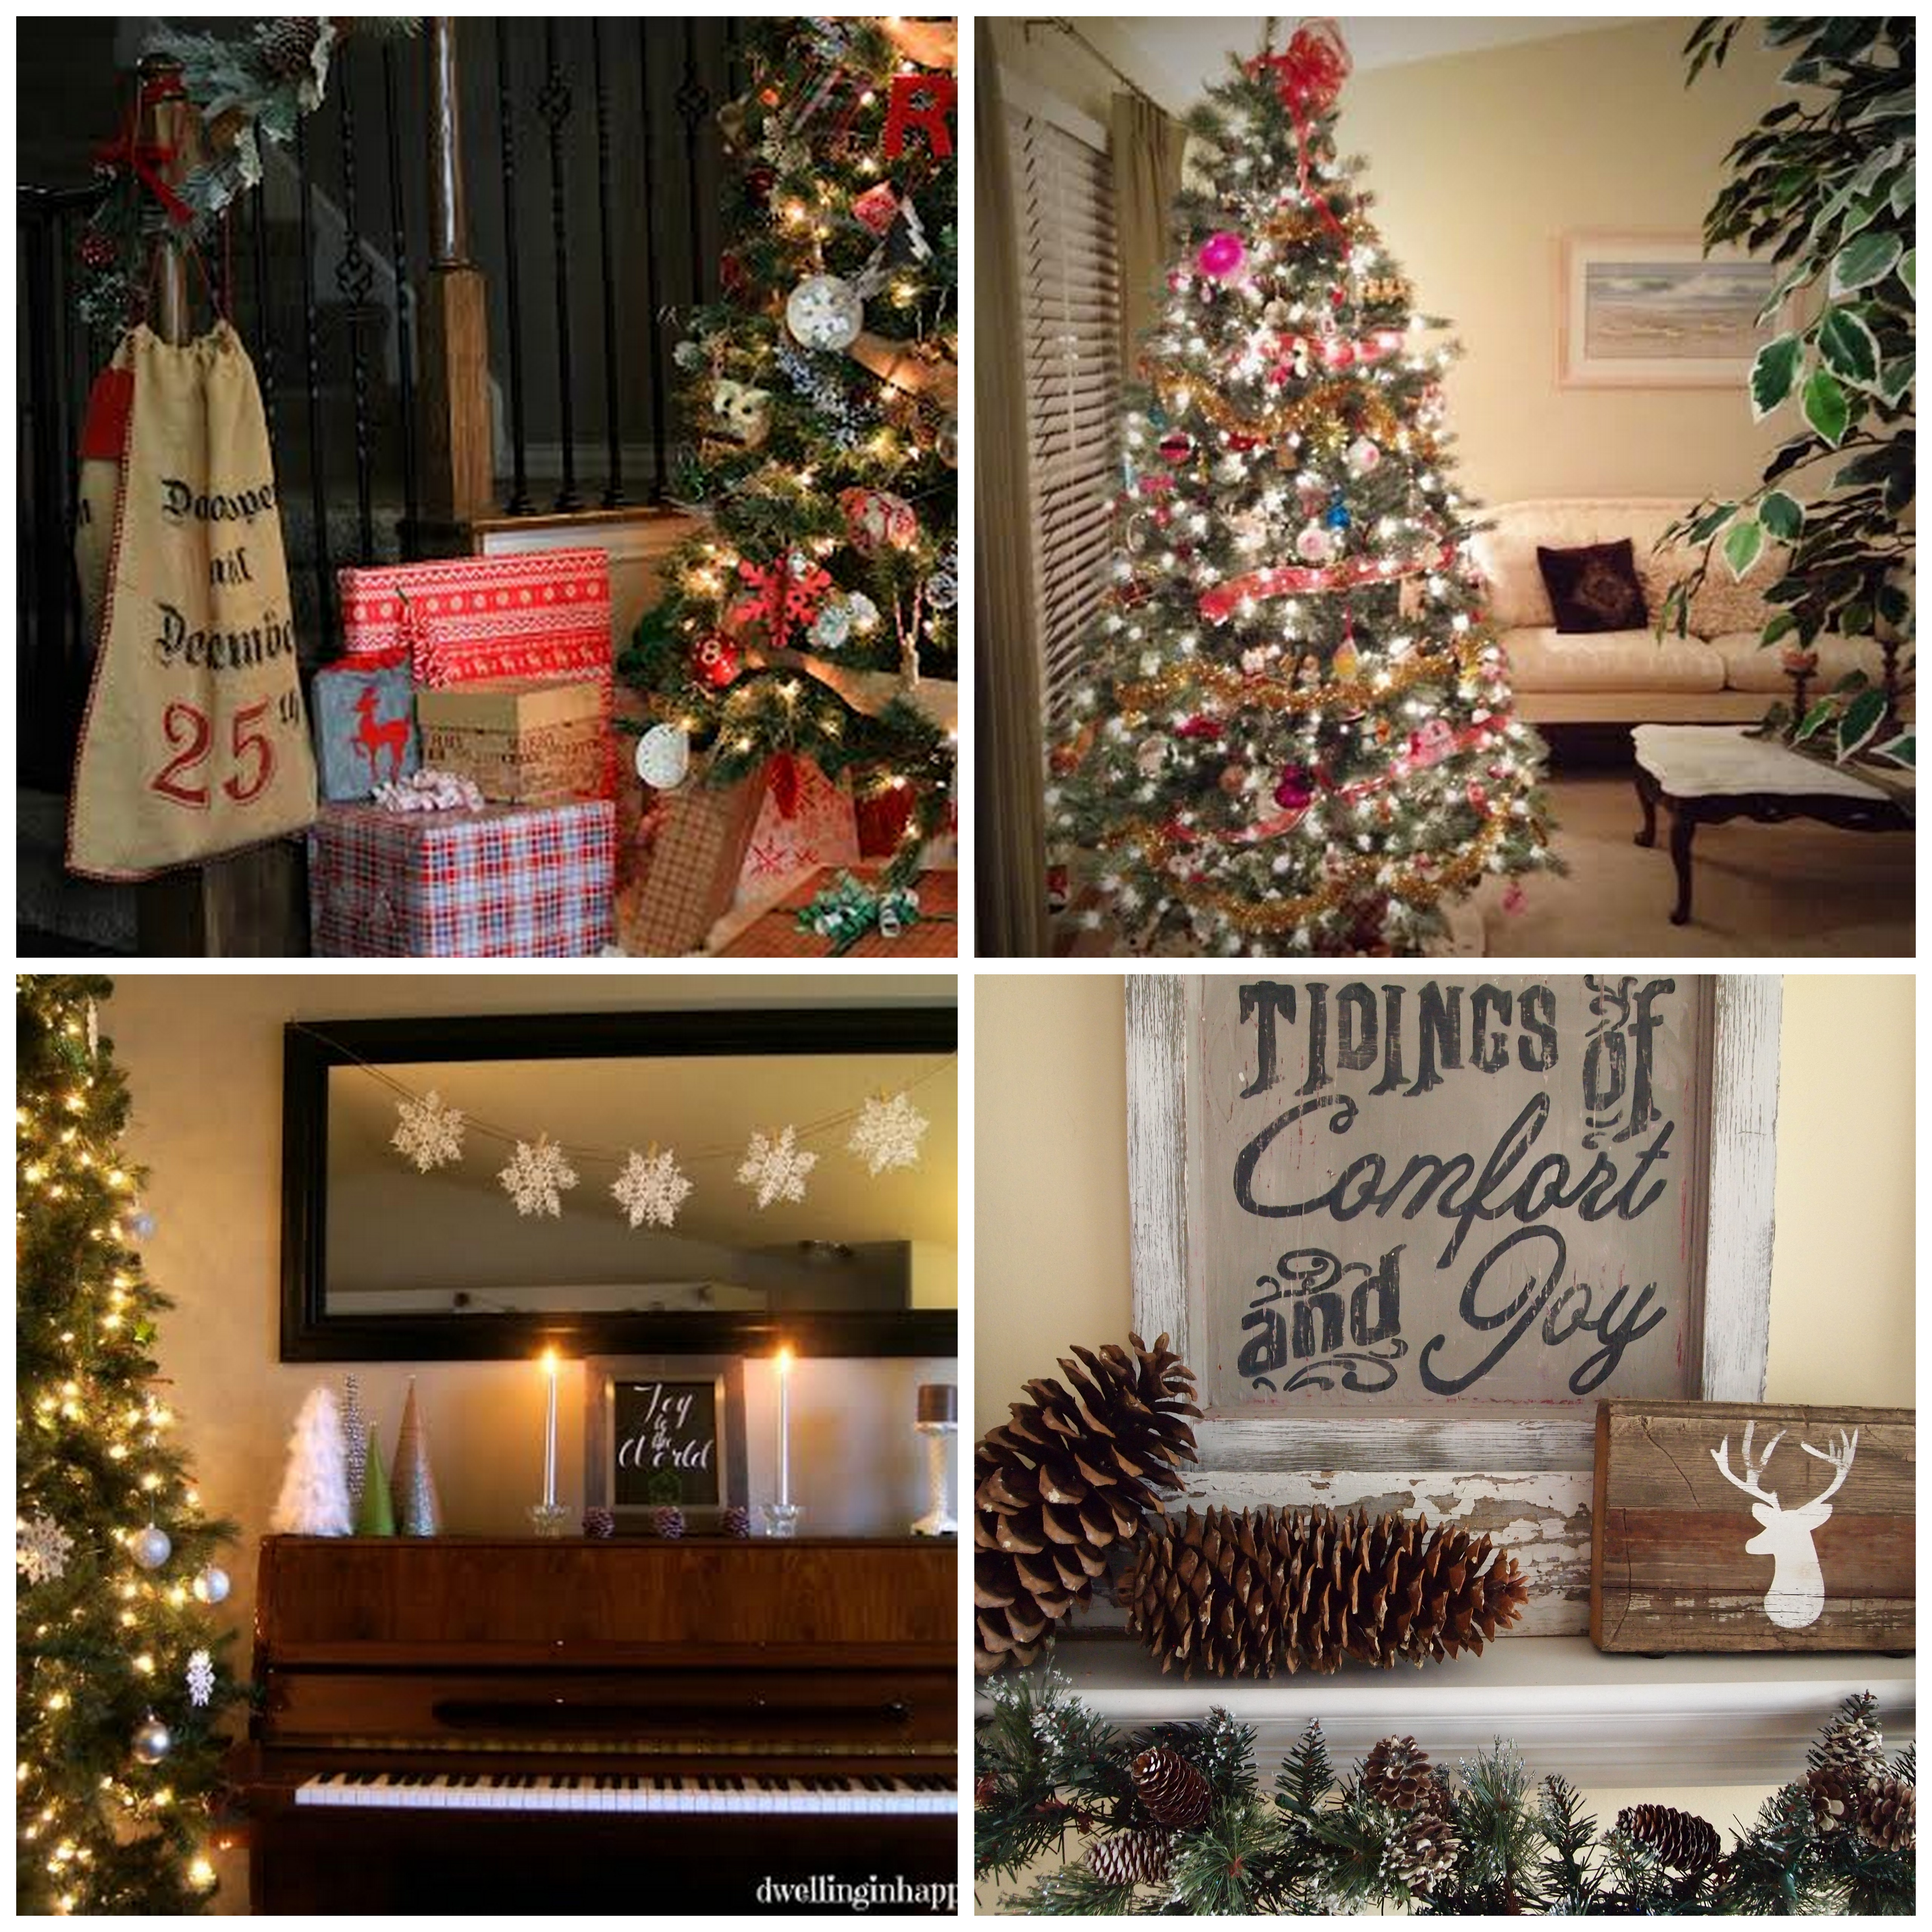 Holiday Home Tour: A Cozy And Simple Christmas Tour